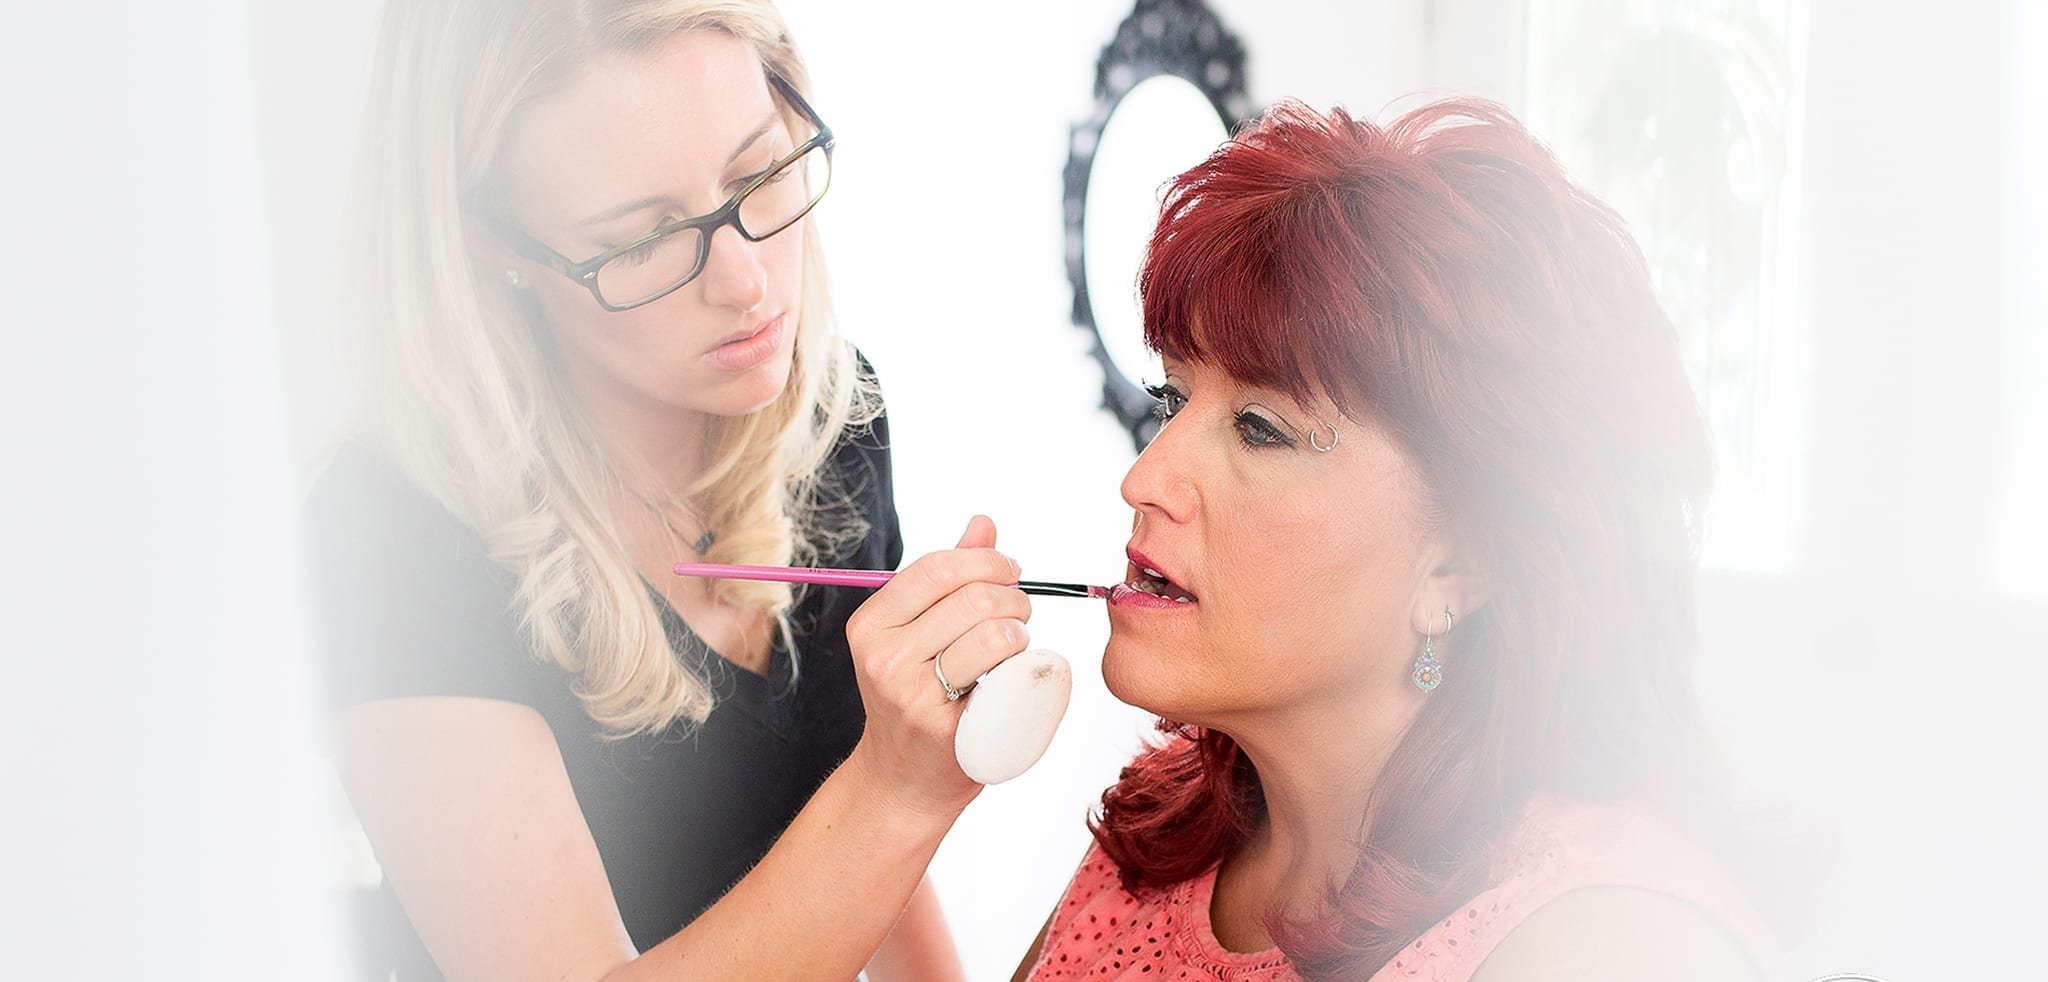 Woman applying lipstick to another woman's lips for a professional headshots session.